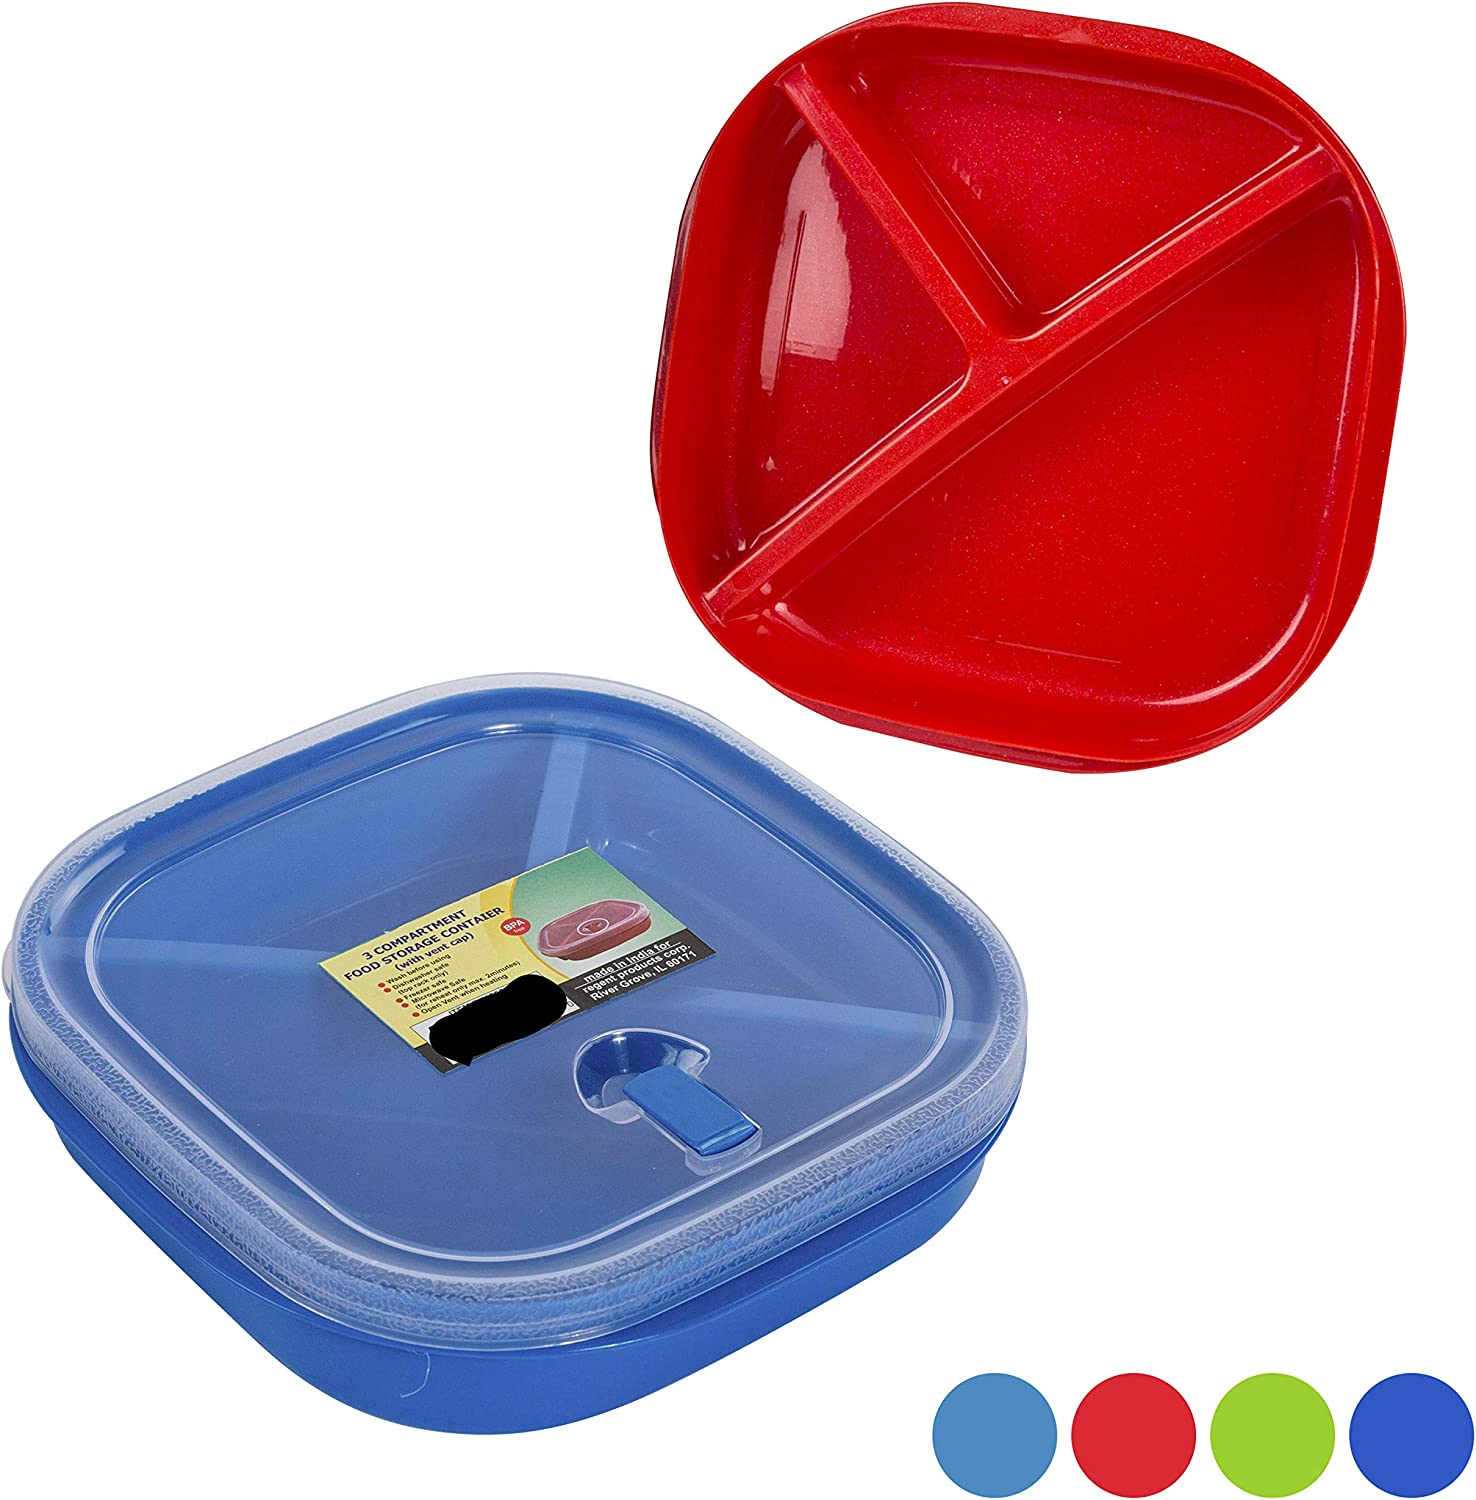 (Set of 4) Microwave Food Storage Tray Containers - 3 Section/Compartment Divided Plates w/Vented Lid - Assorted Colors